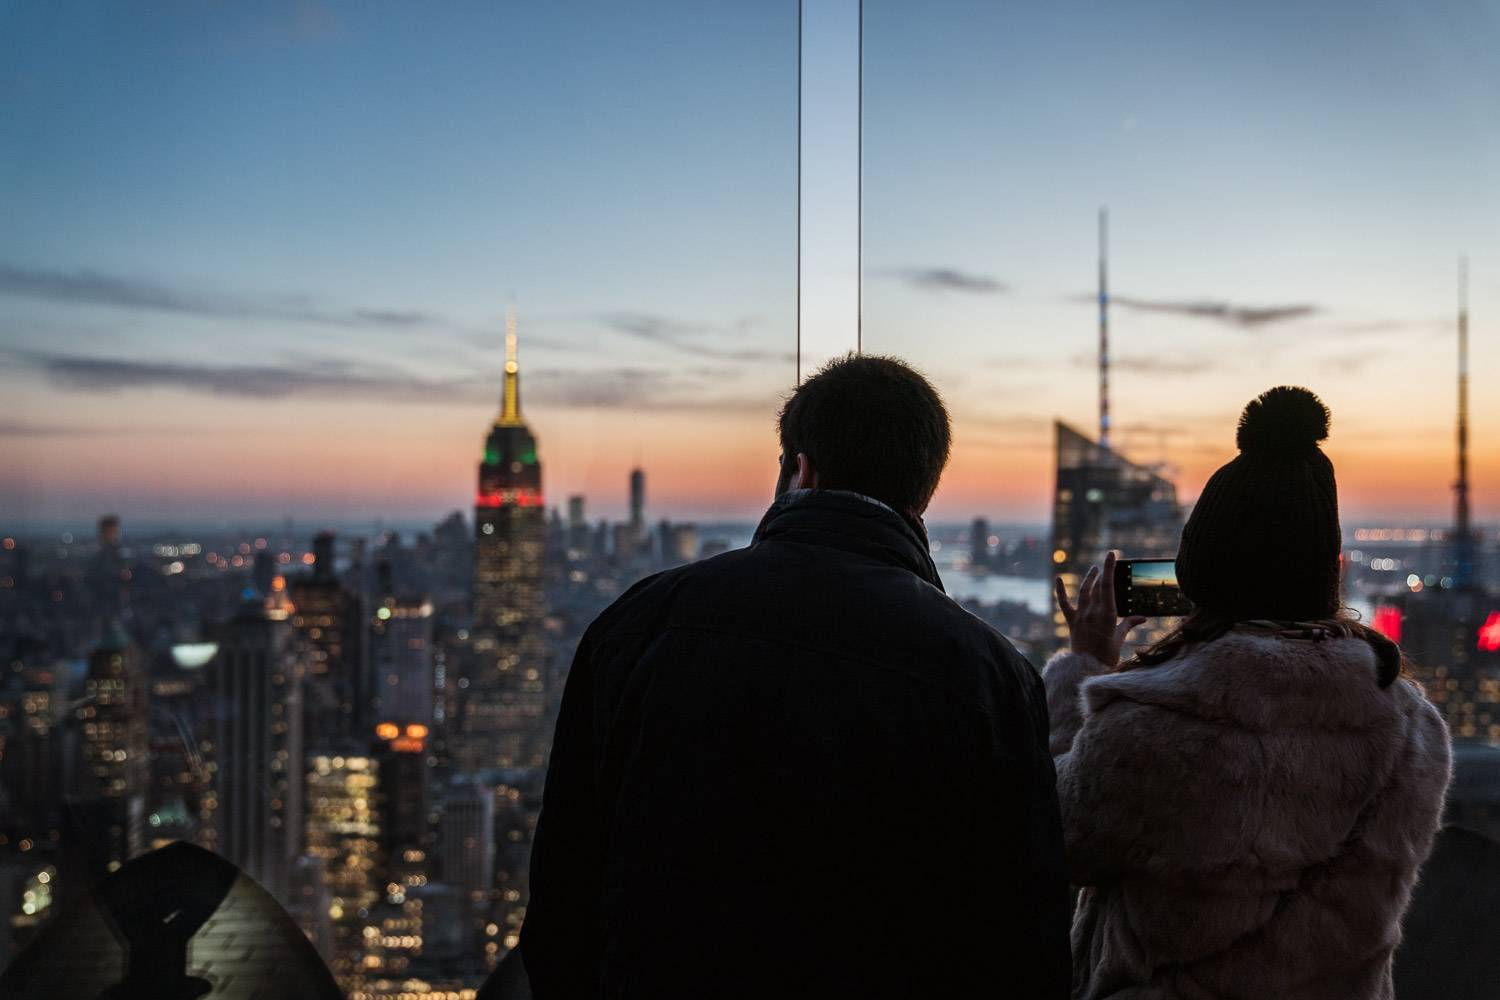 Image of a couple on top of a skyscraper at sunset with the Empire State Building lit up in the background